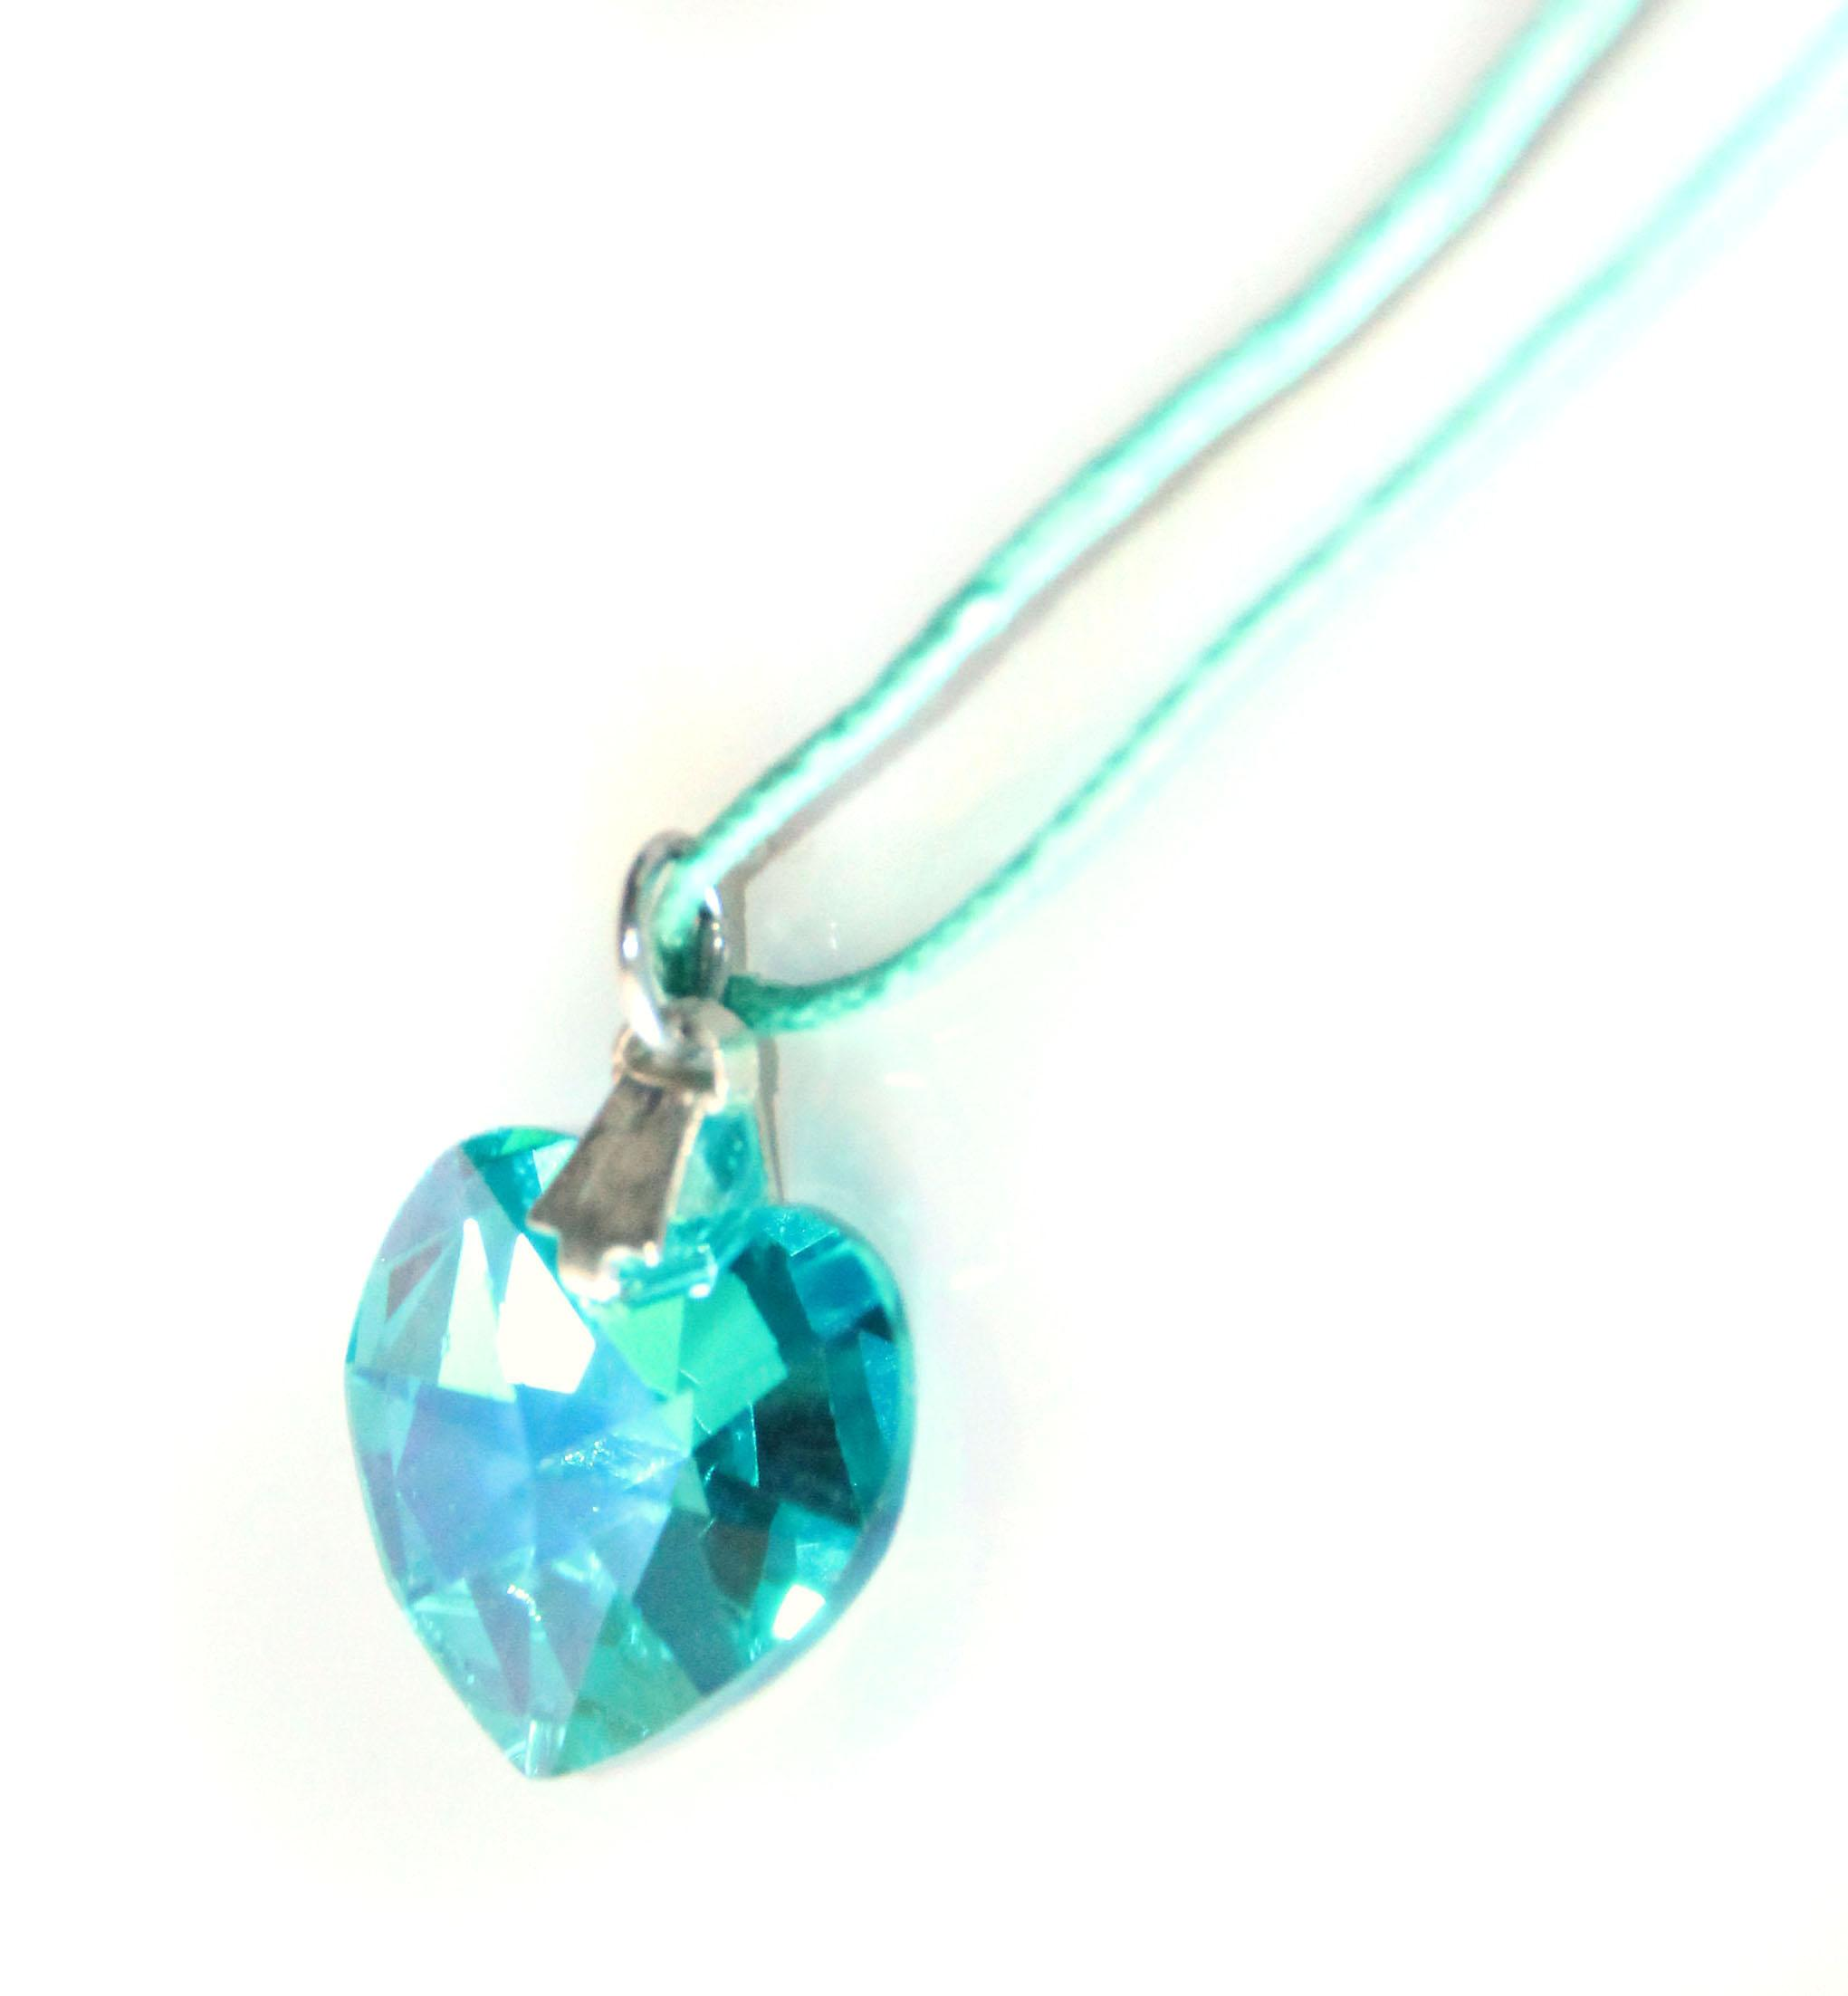 Waooh - Jewelry - Swarovski / turquoise pendant heart with waxed cord